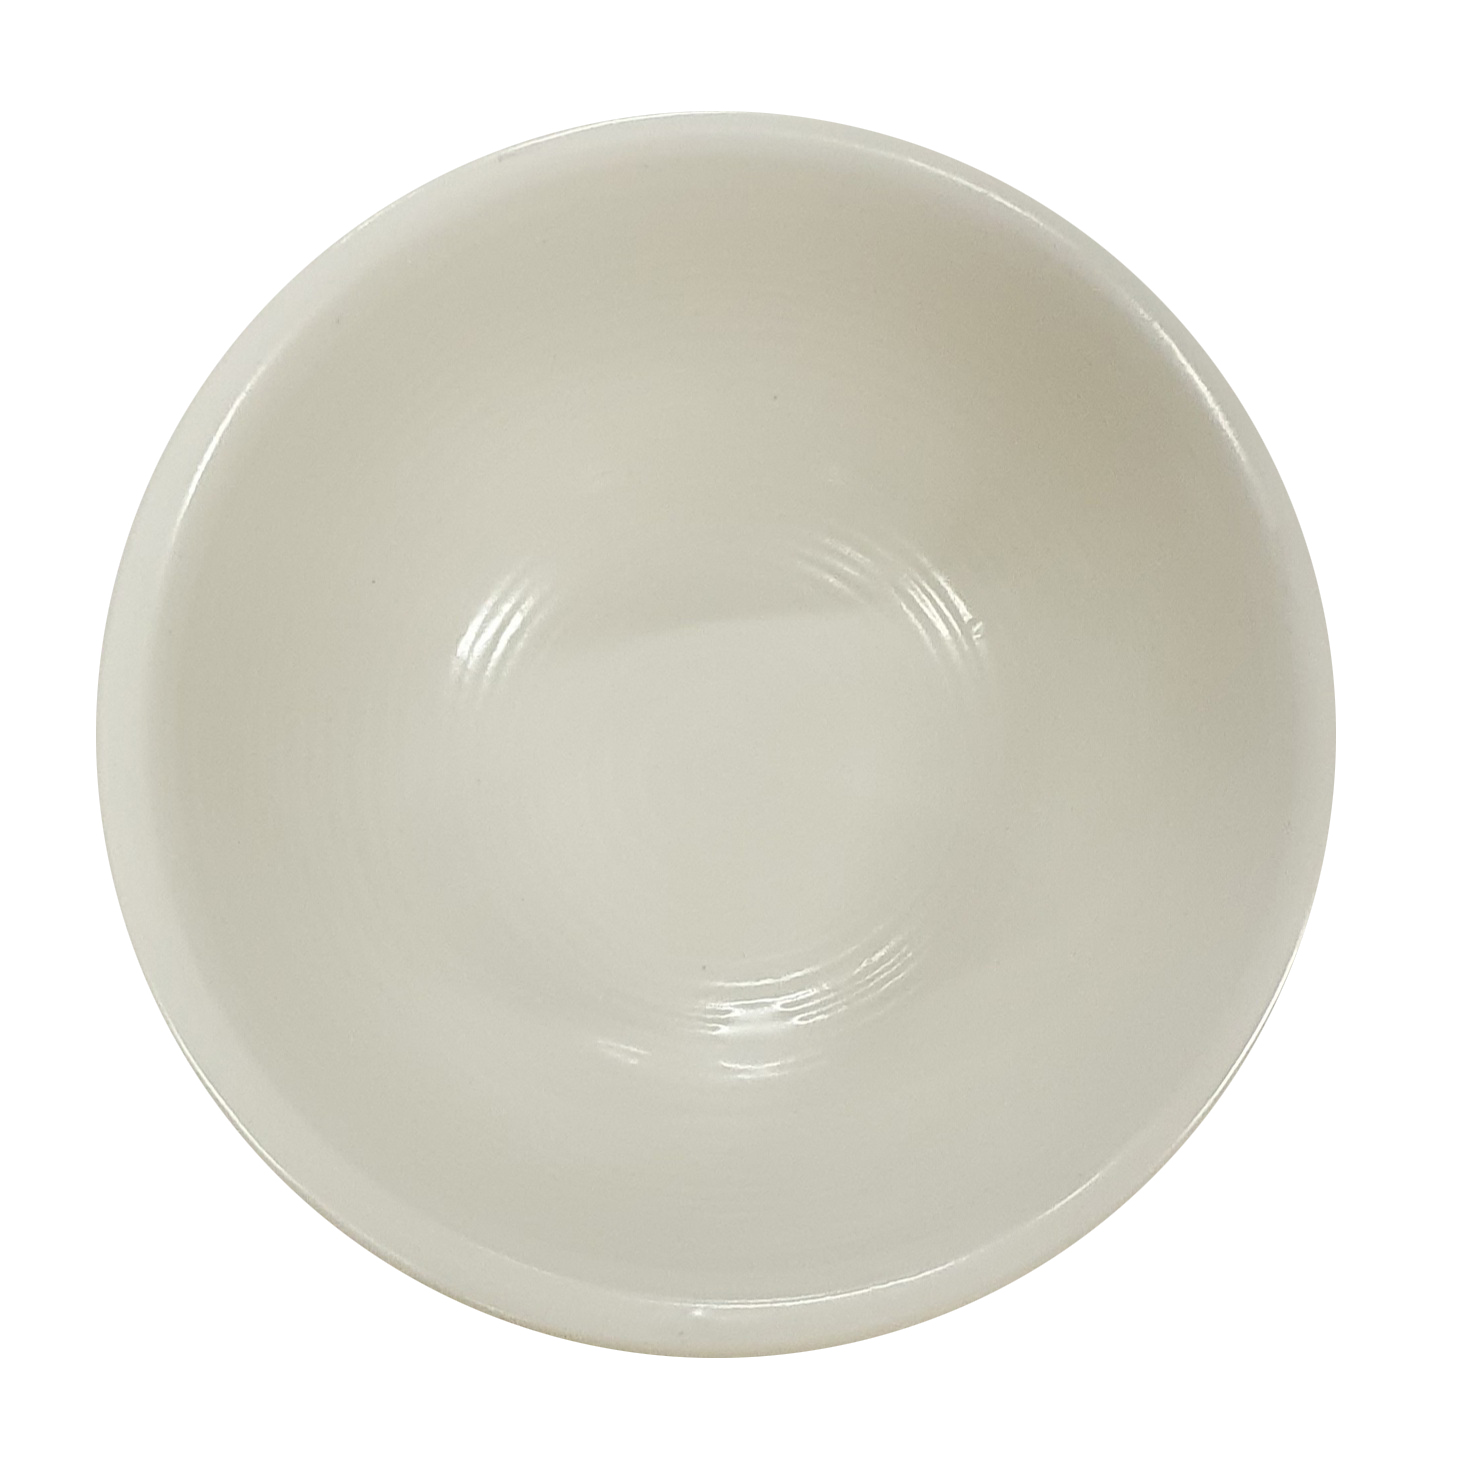 Round footed bowl 6¼